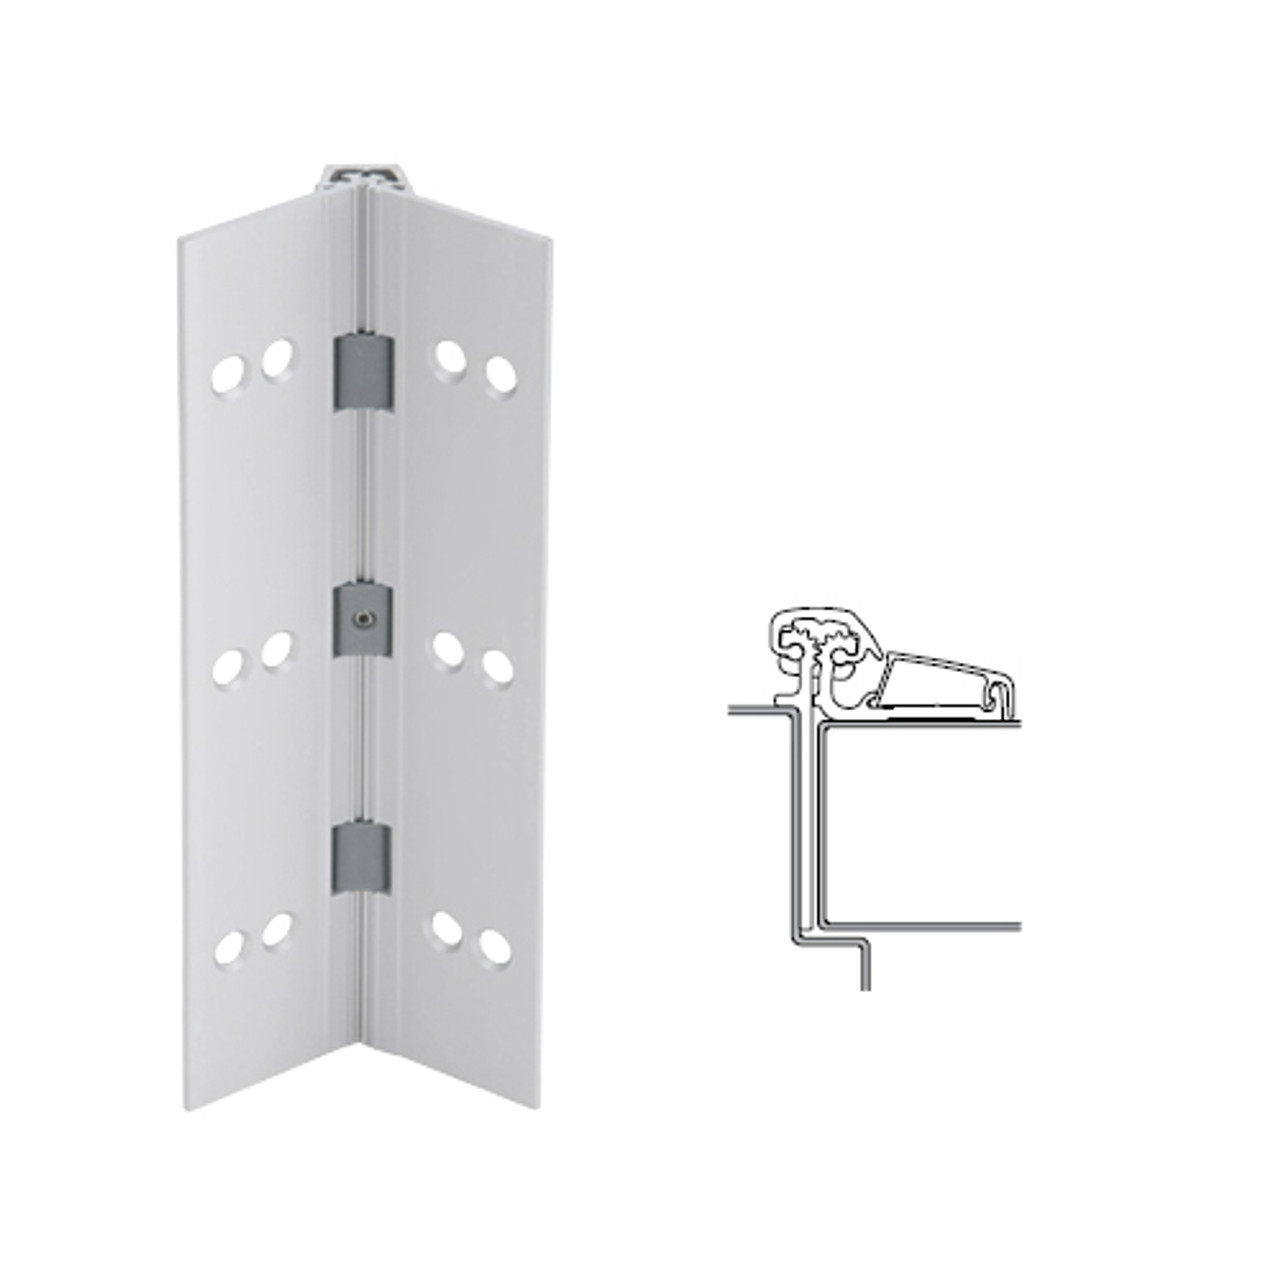 054XY-US28-120-SECWDHM IVES Adjustable Half Surface Continuous Geared Hinges with Security Screws - Hex Pin Drive in Satin Aluminum